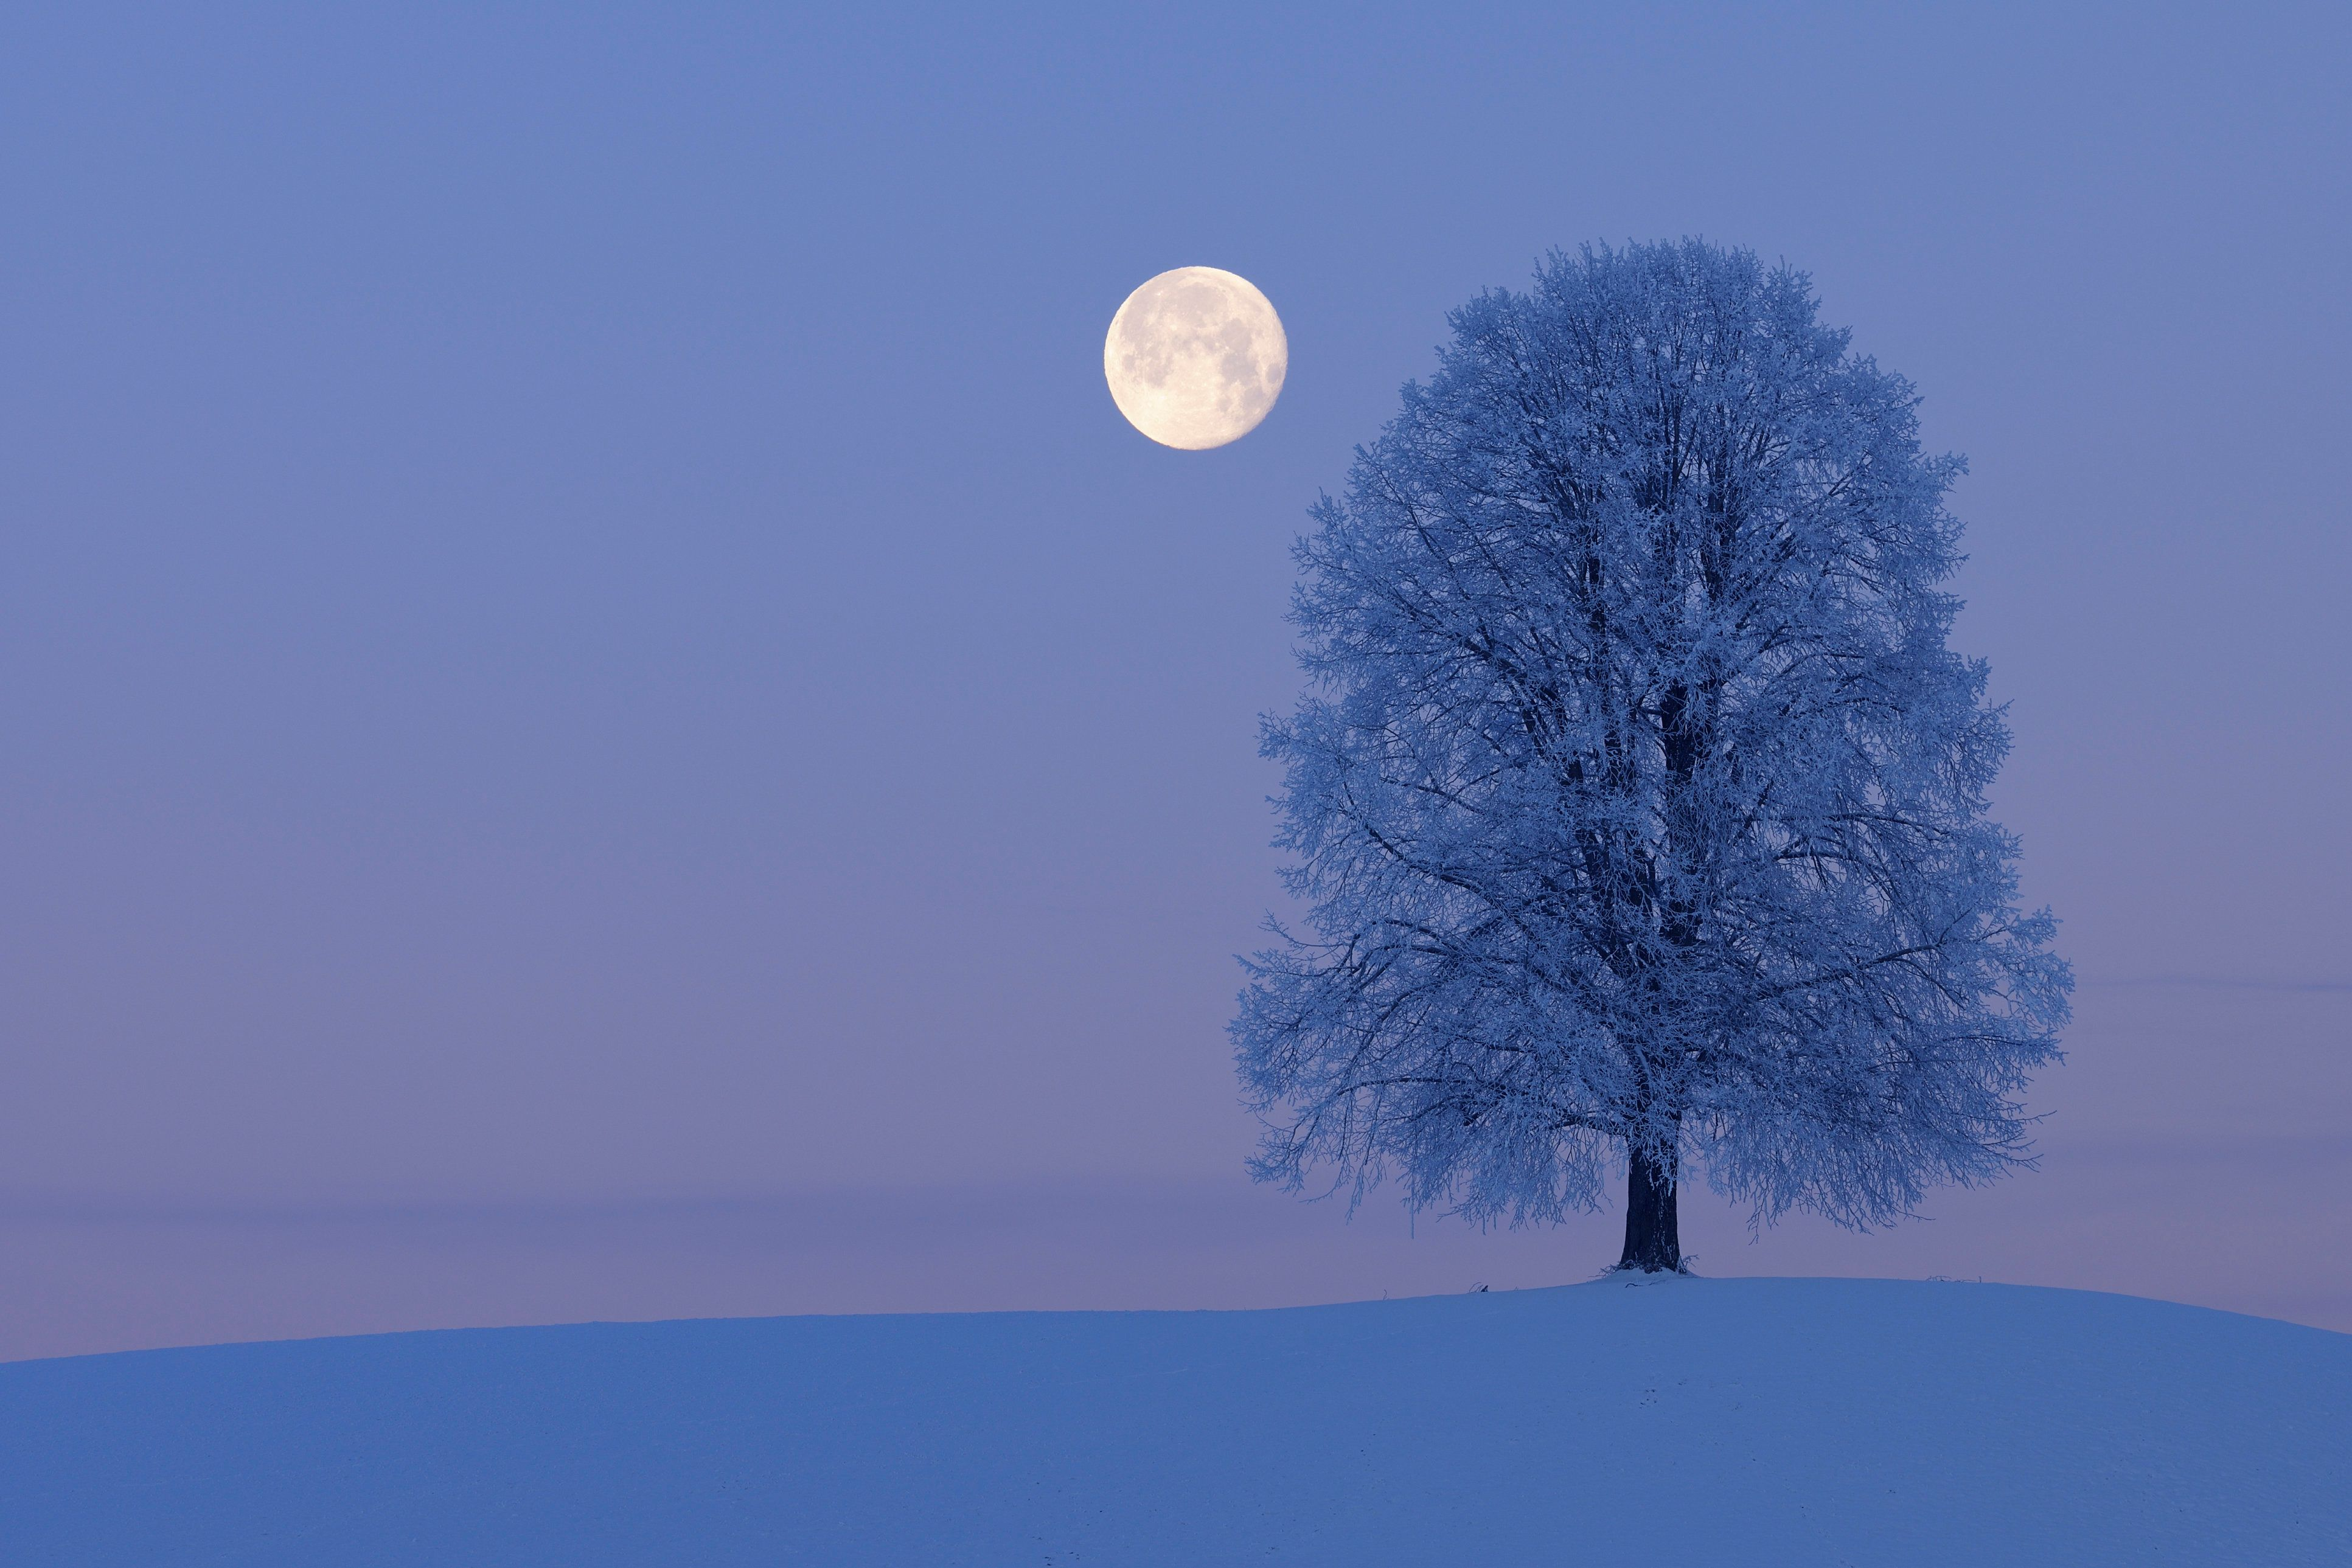 Solitude Lime Tree (Tilia spec.) on hill with full moon at dawn, snowy winter landscape. Canton Zug, Switzerland, Europe.